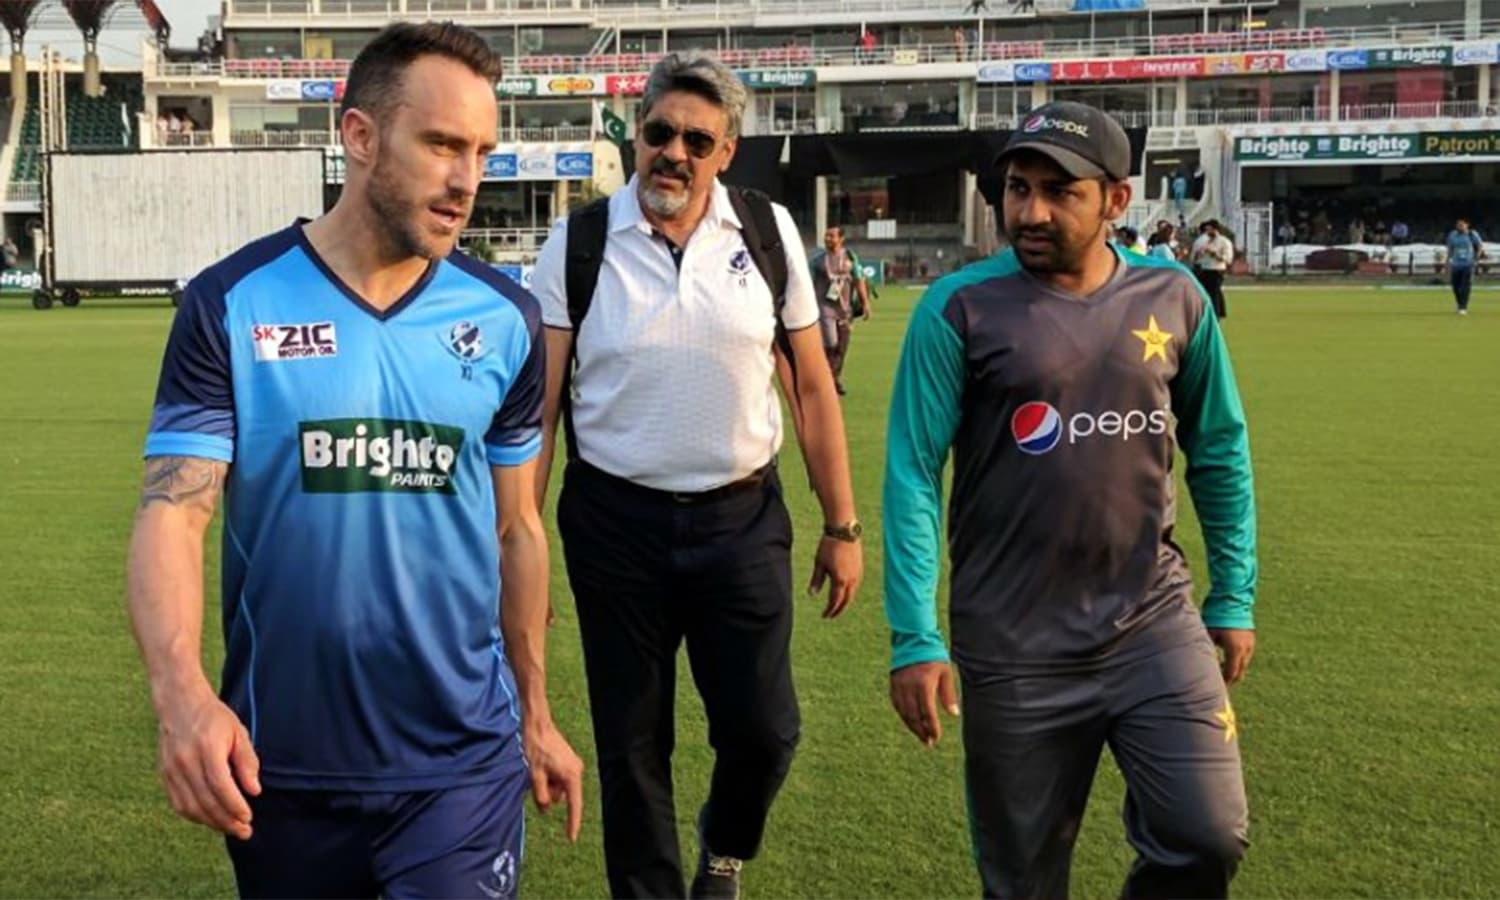 World XI skipper Faf du Plessis (L) and Pakistan captain Sarfraz Ahmed are seen at Gaddafi Stadium.—Photo courtesy: PCB Twitter @TheRealPCB